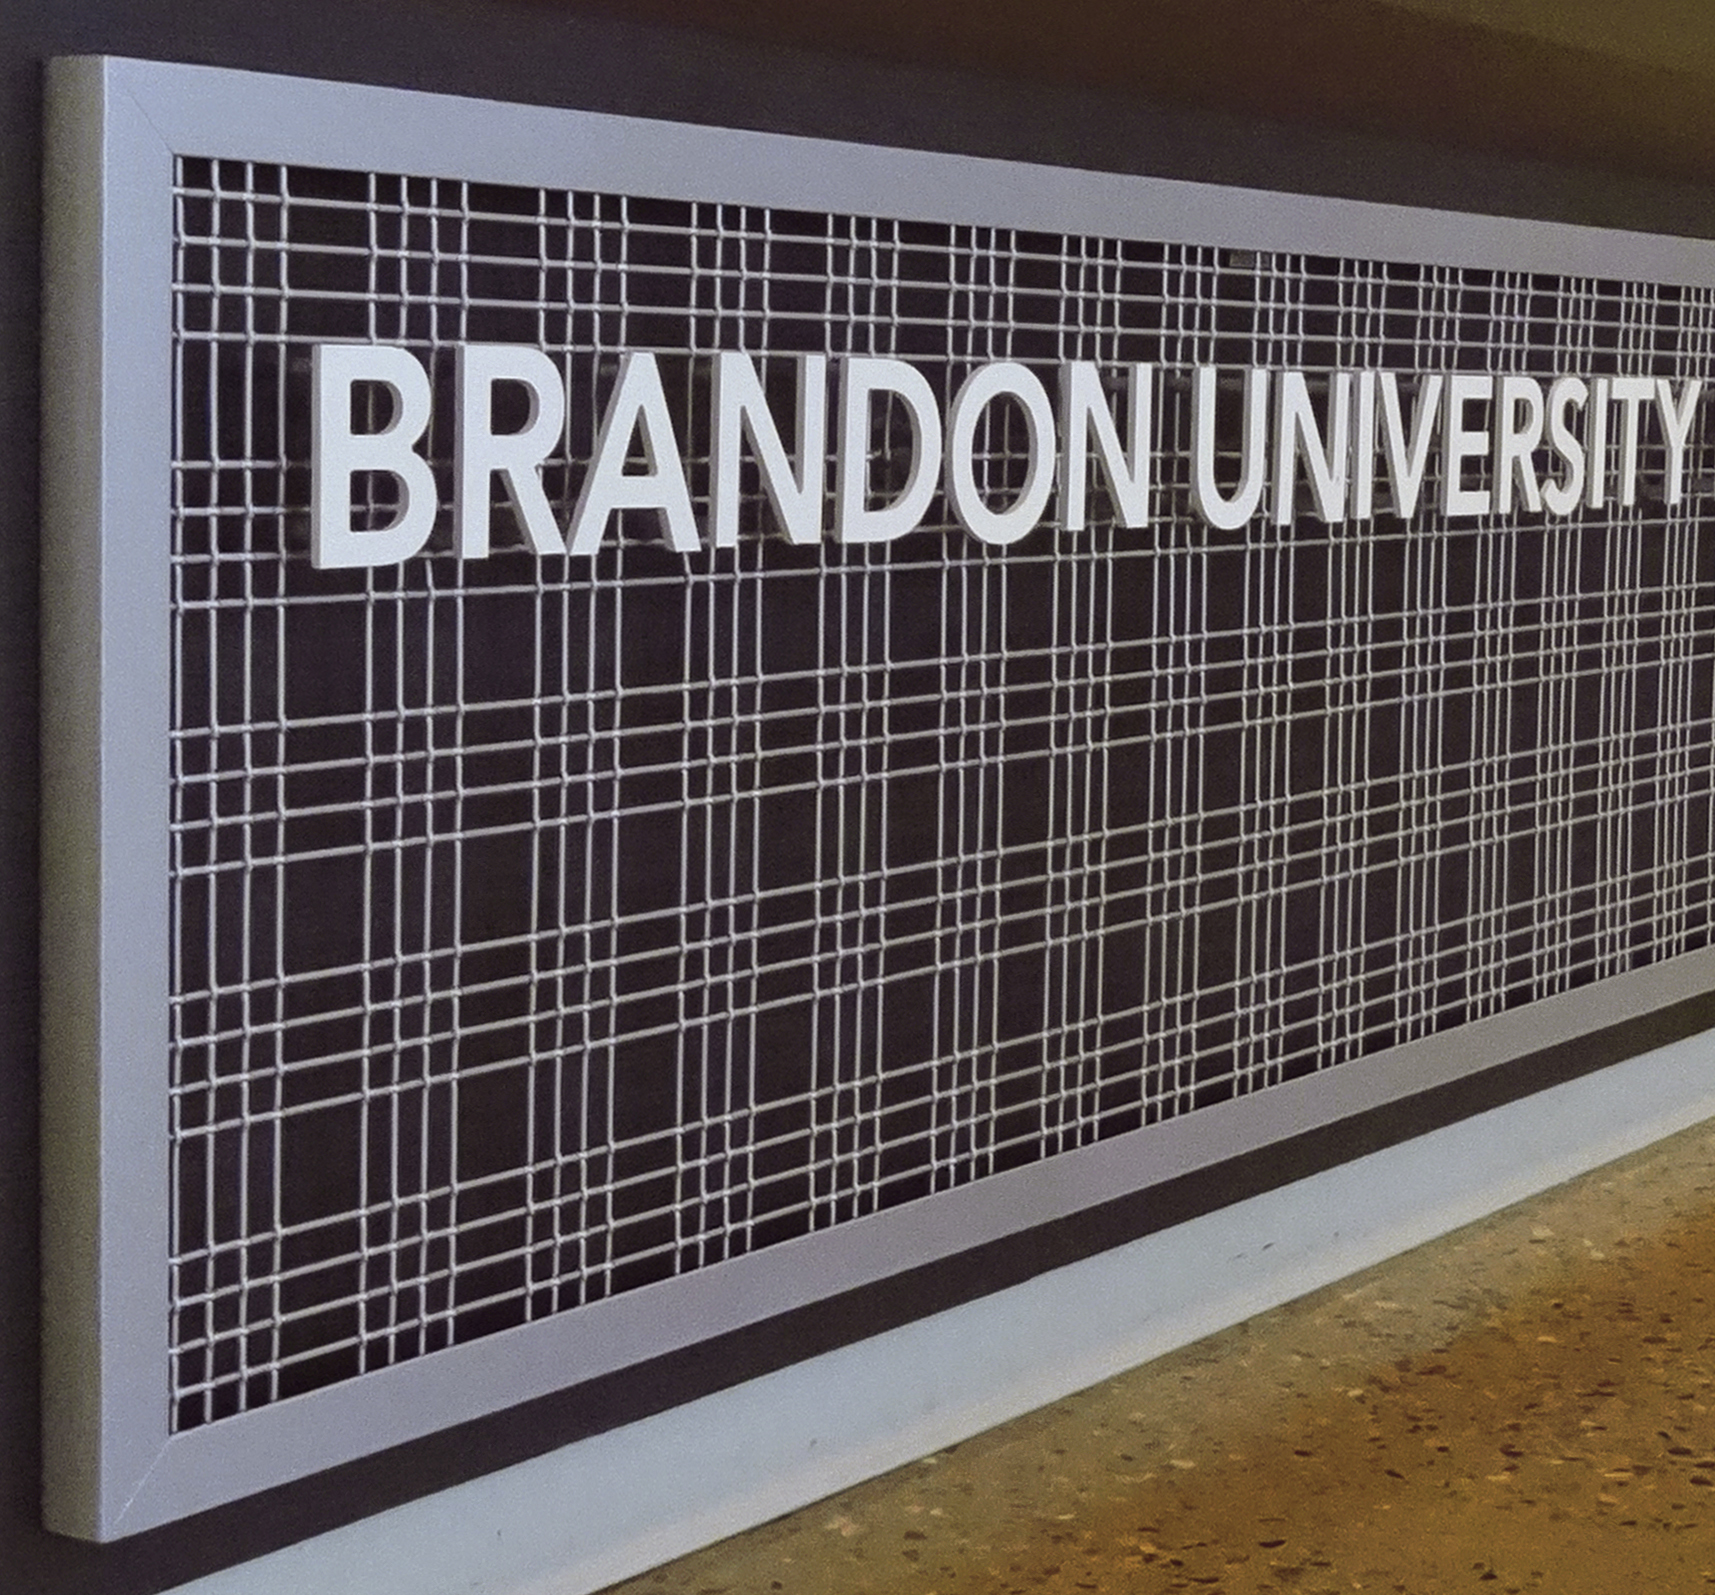 M44-2 woven wire mesh helps make this university's name pop.